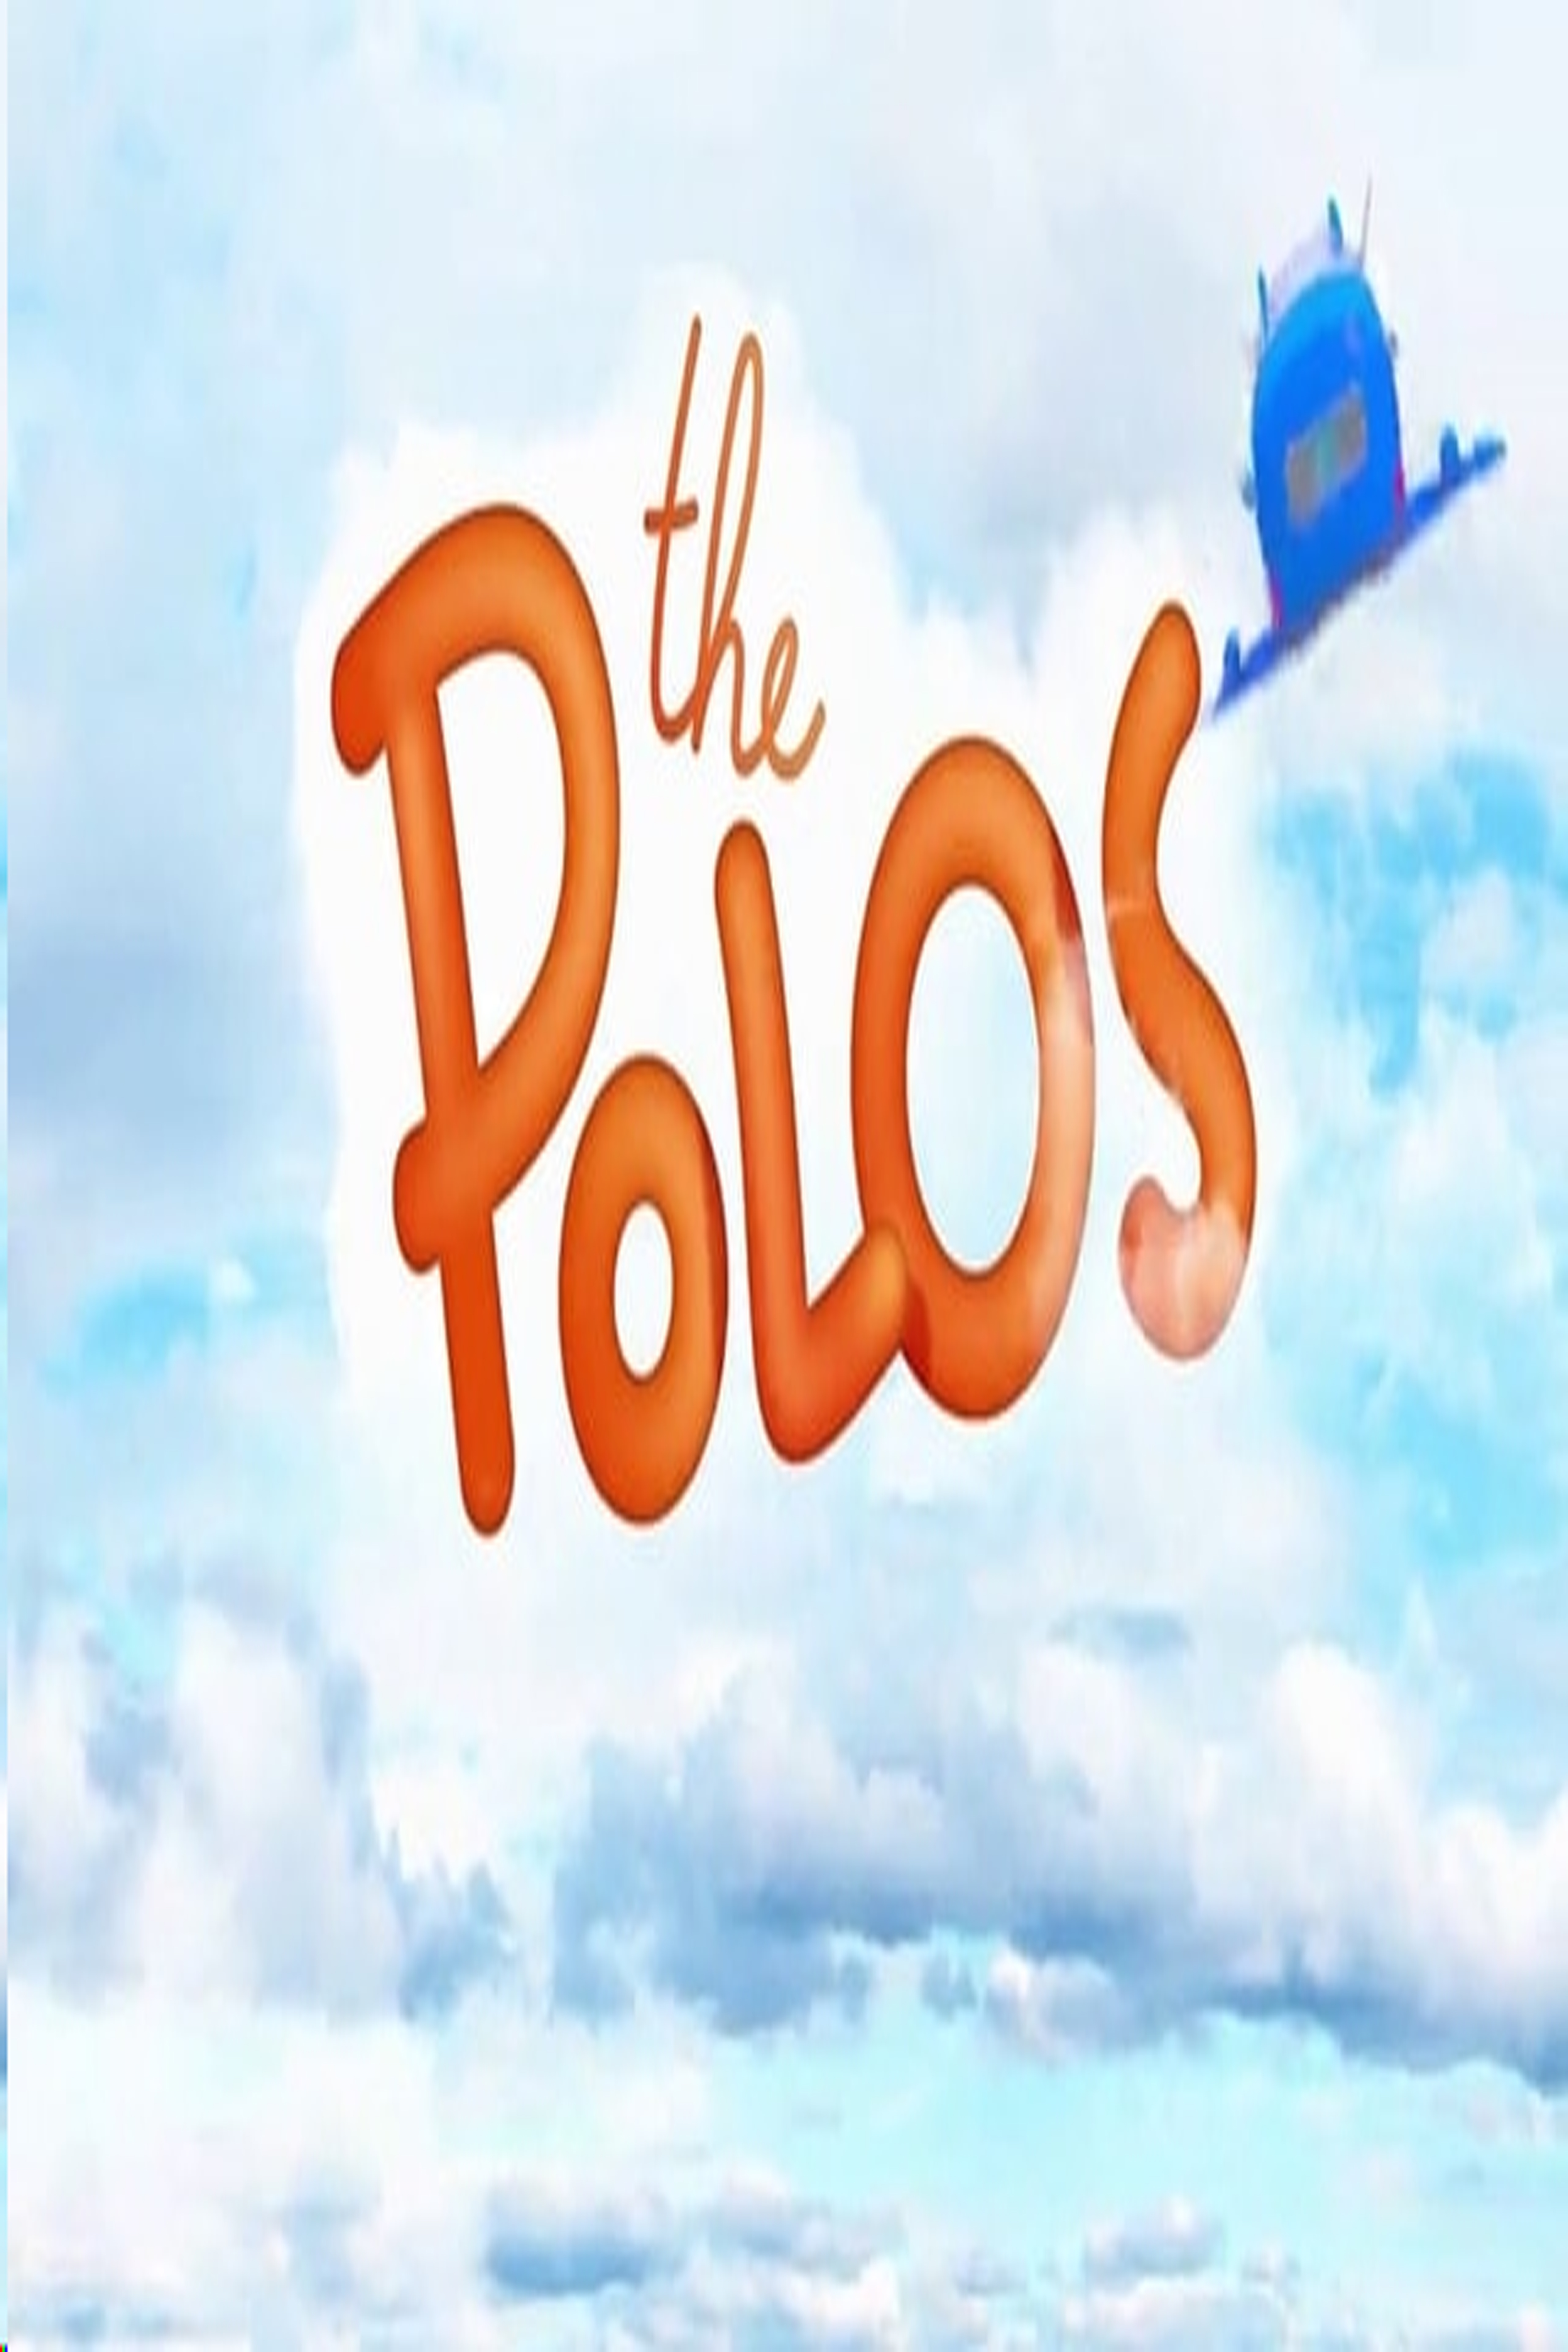 The Polos - 探險隊